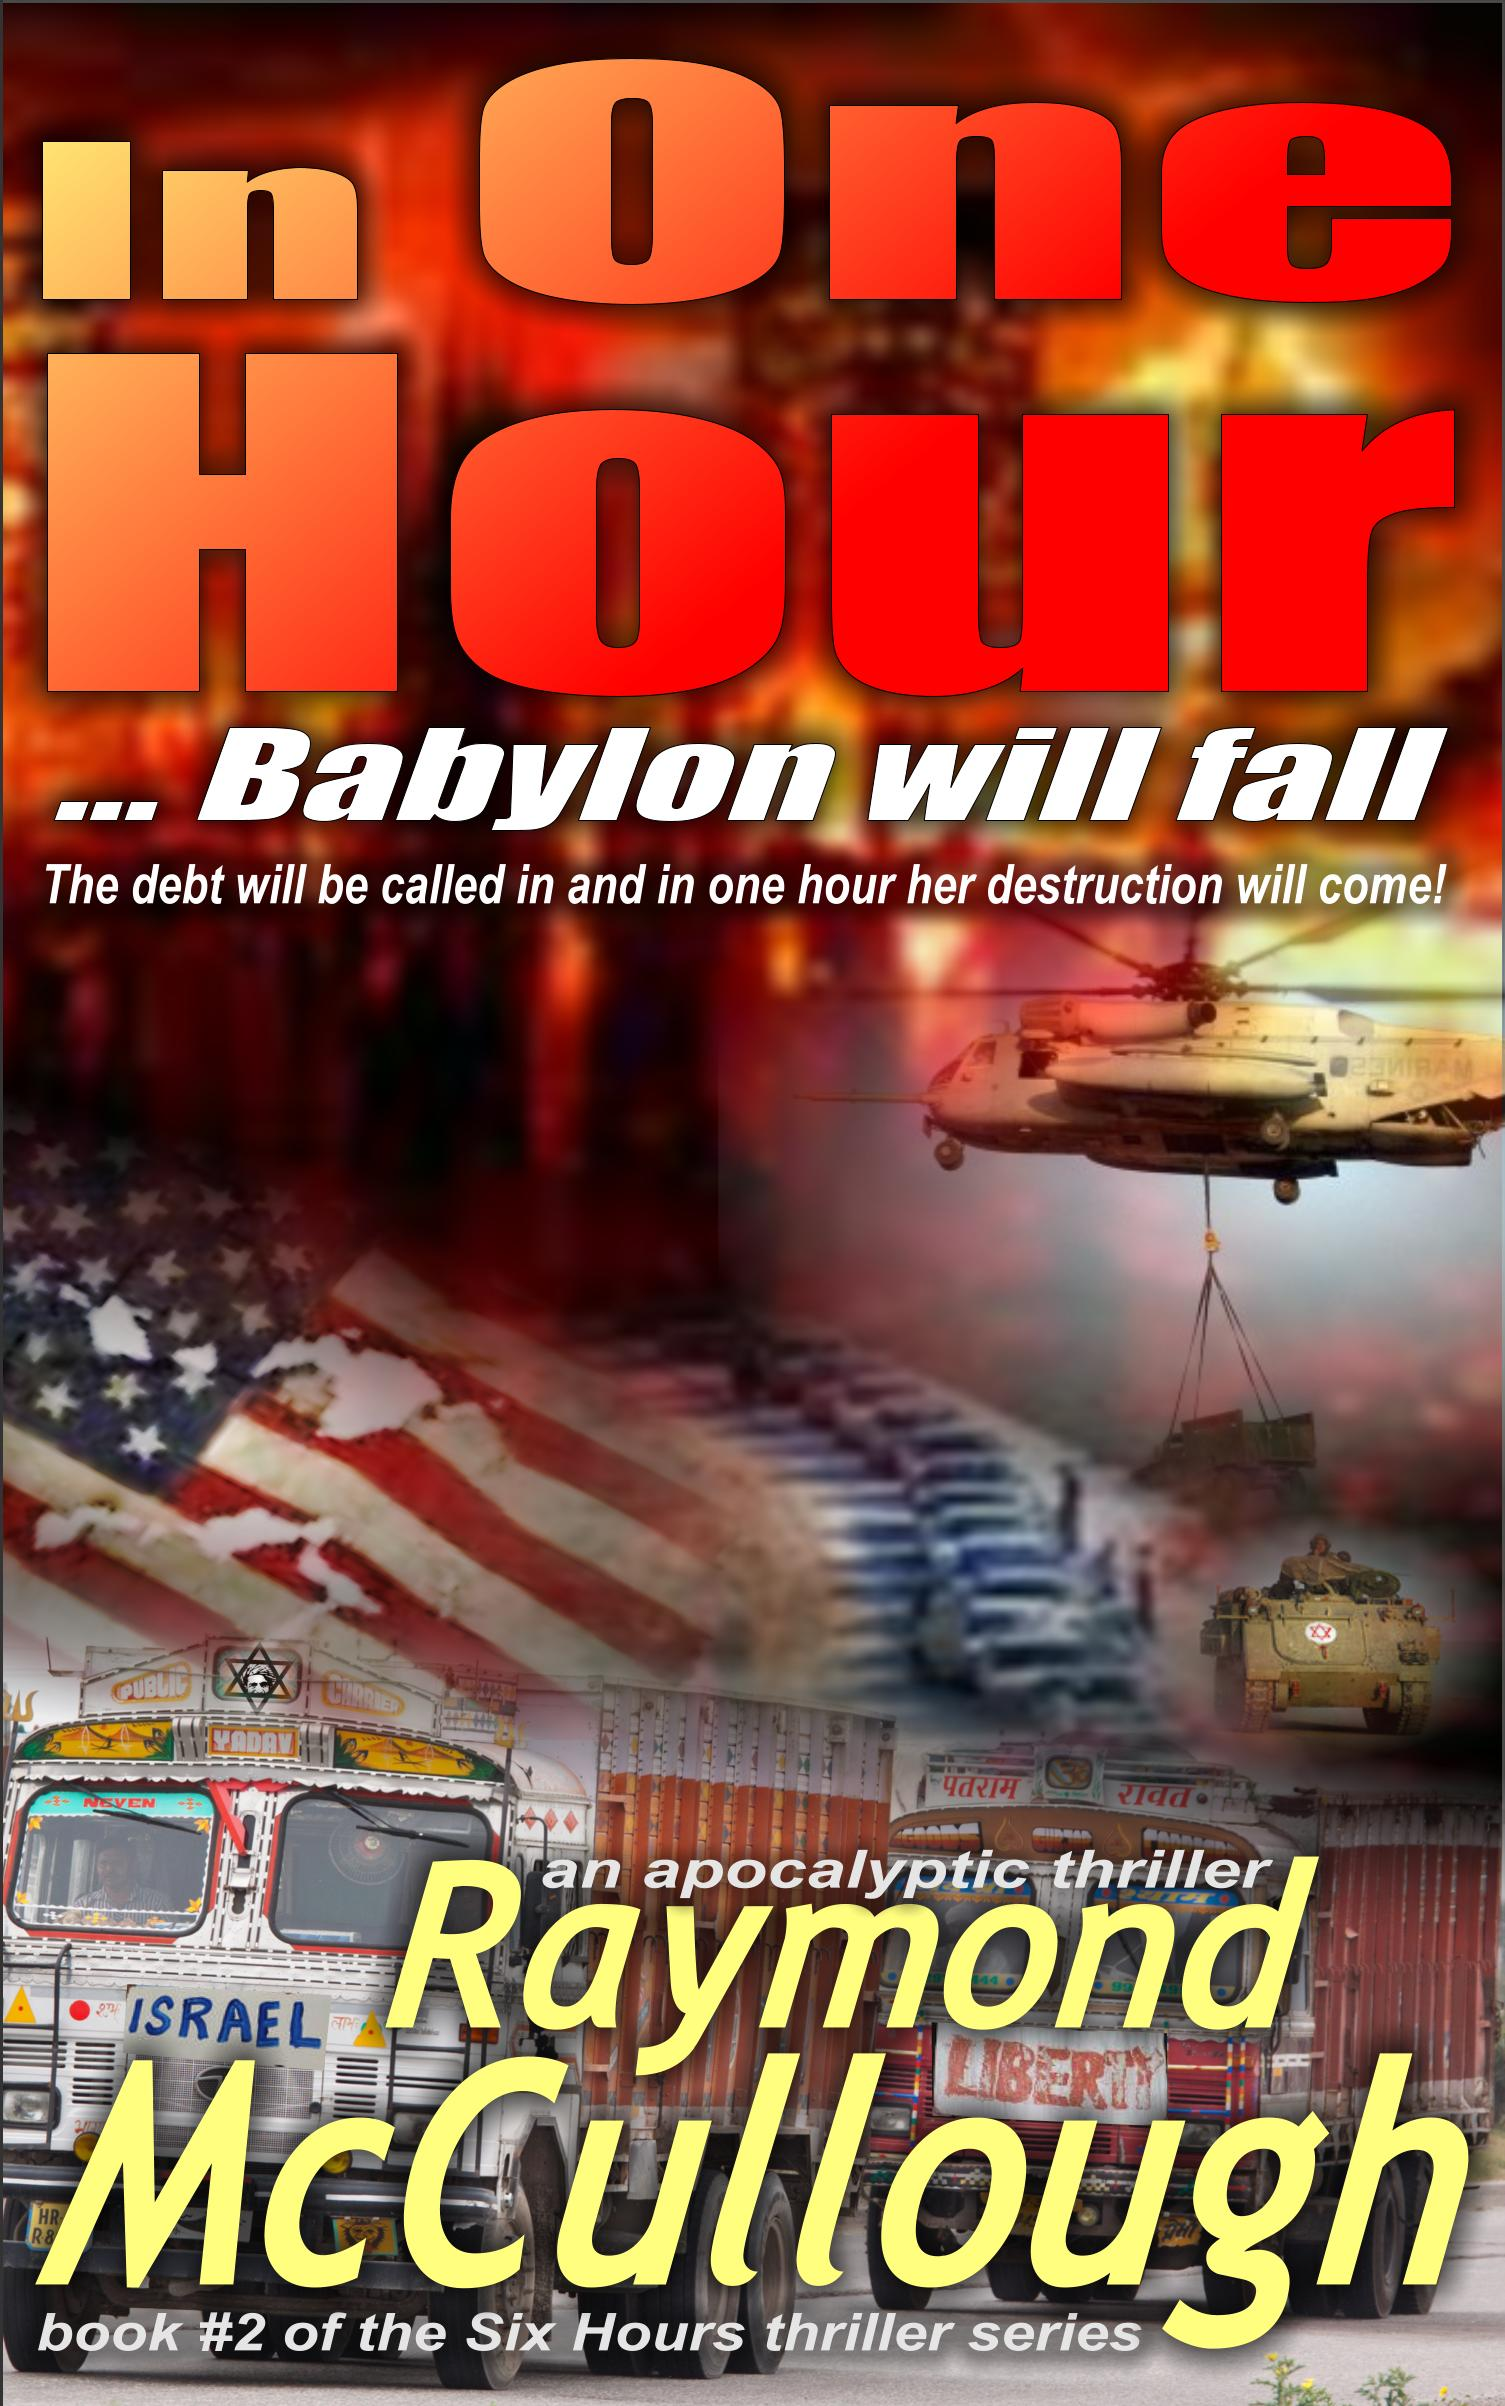 Book: 'In One Hour .. Babylon will fall' – The debt will be called in and in one hour her destruction will come – and the world – will change forever